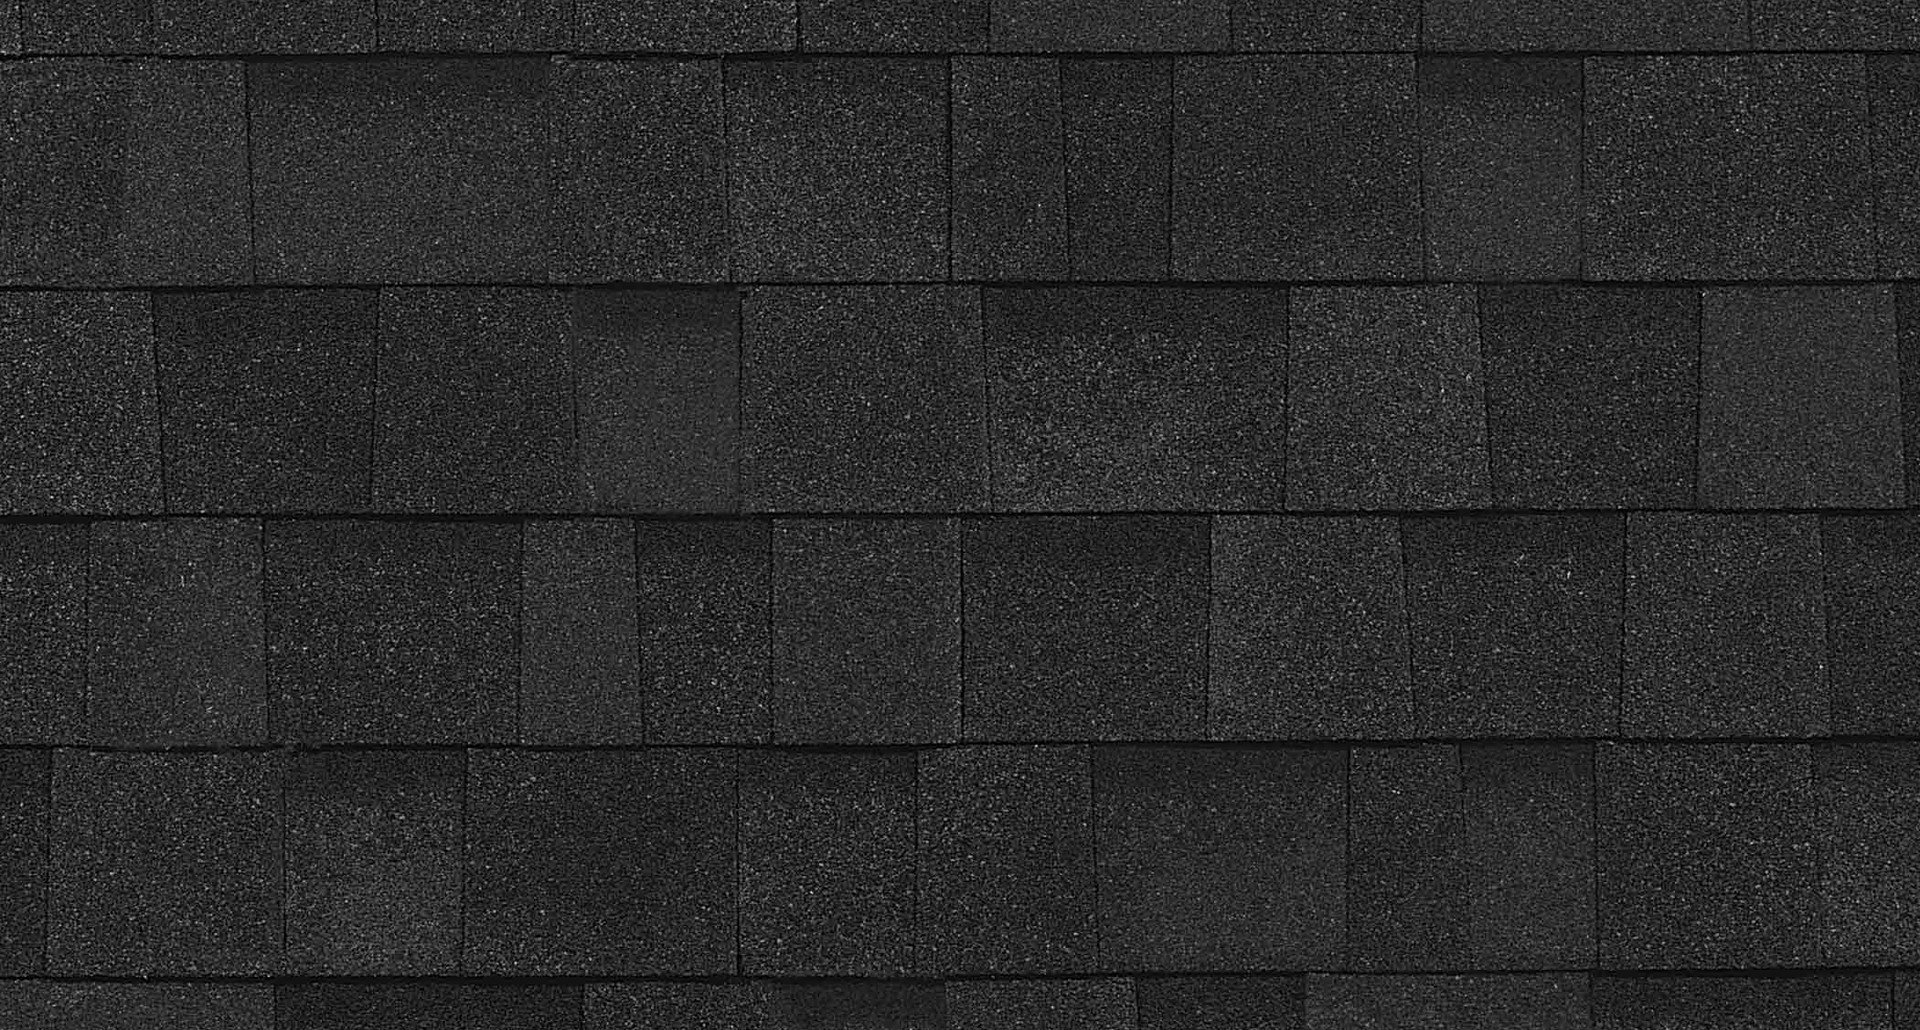 Owens Corning OakRidge Onyx Black